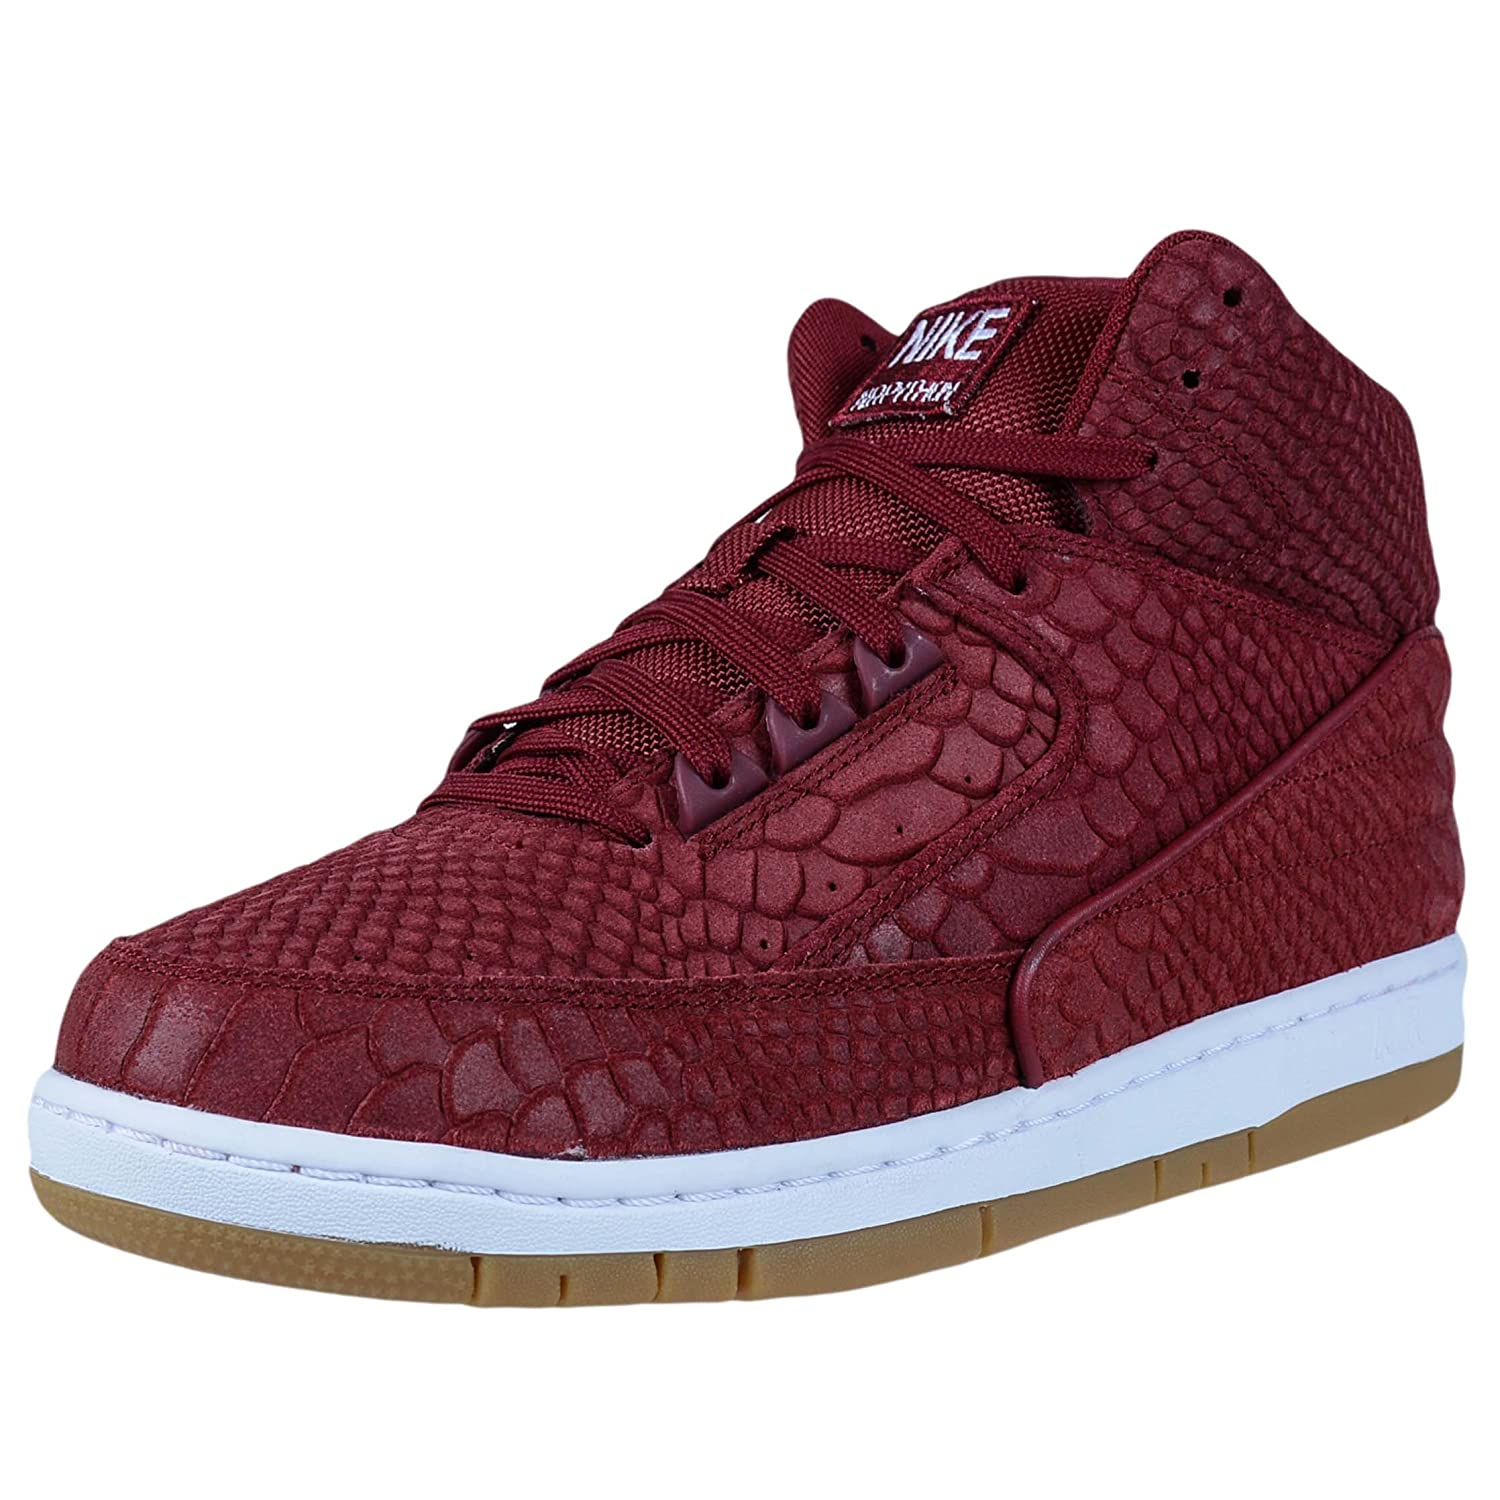 finest selection 324c2 0ca32 Amazon.com  NIKE Air Python Premium  Basketball